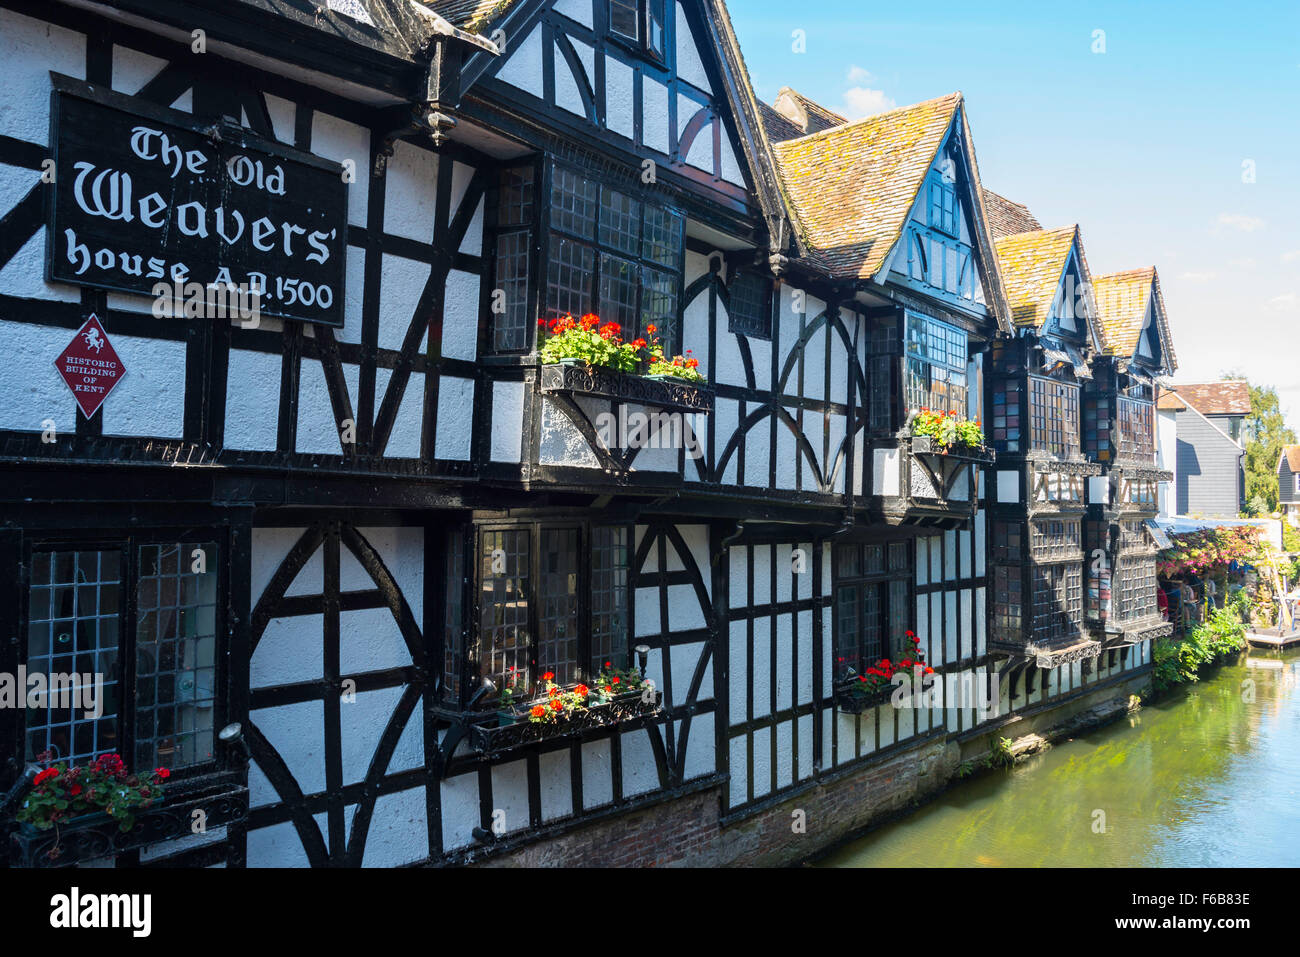 16th Century The Old Weavers' House Restaurant on River Stour, High Street, Canterbury, Kent, England, United - Stock Image